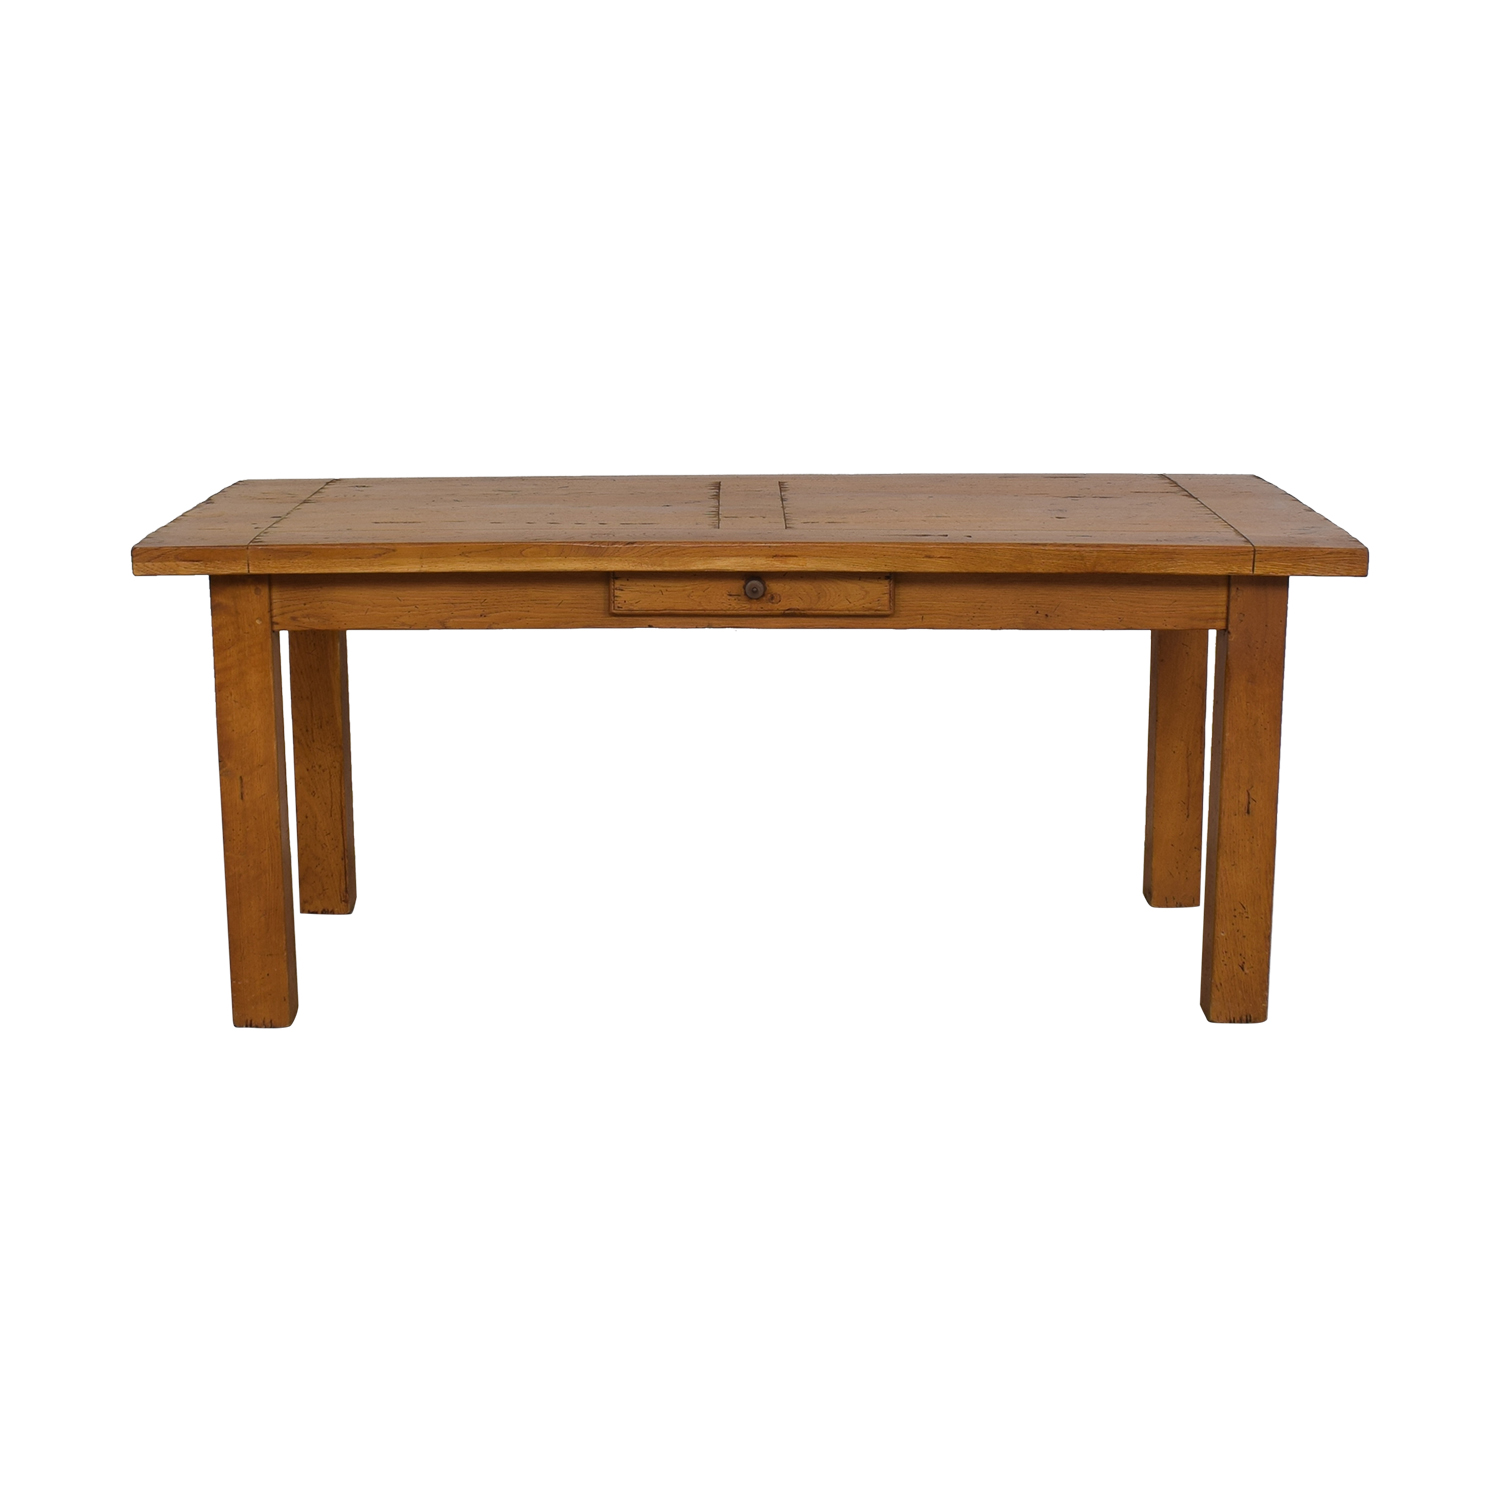 Crate & Barrel French Farm Dining Table sale